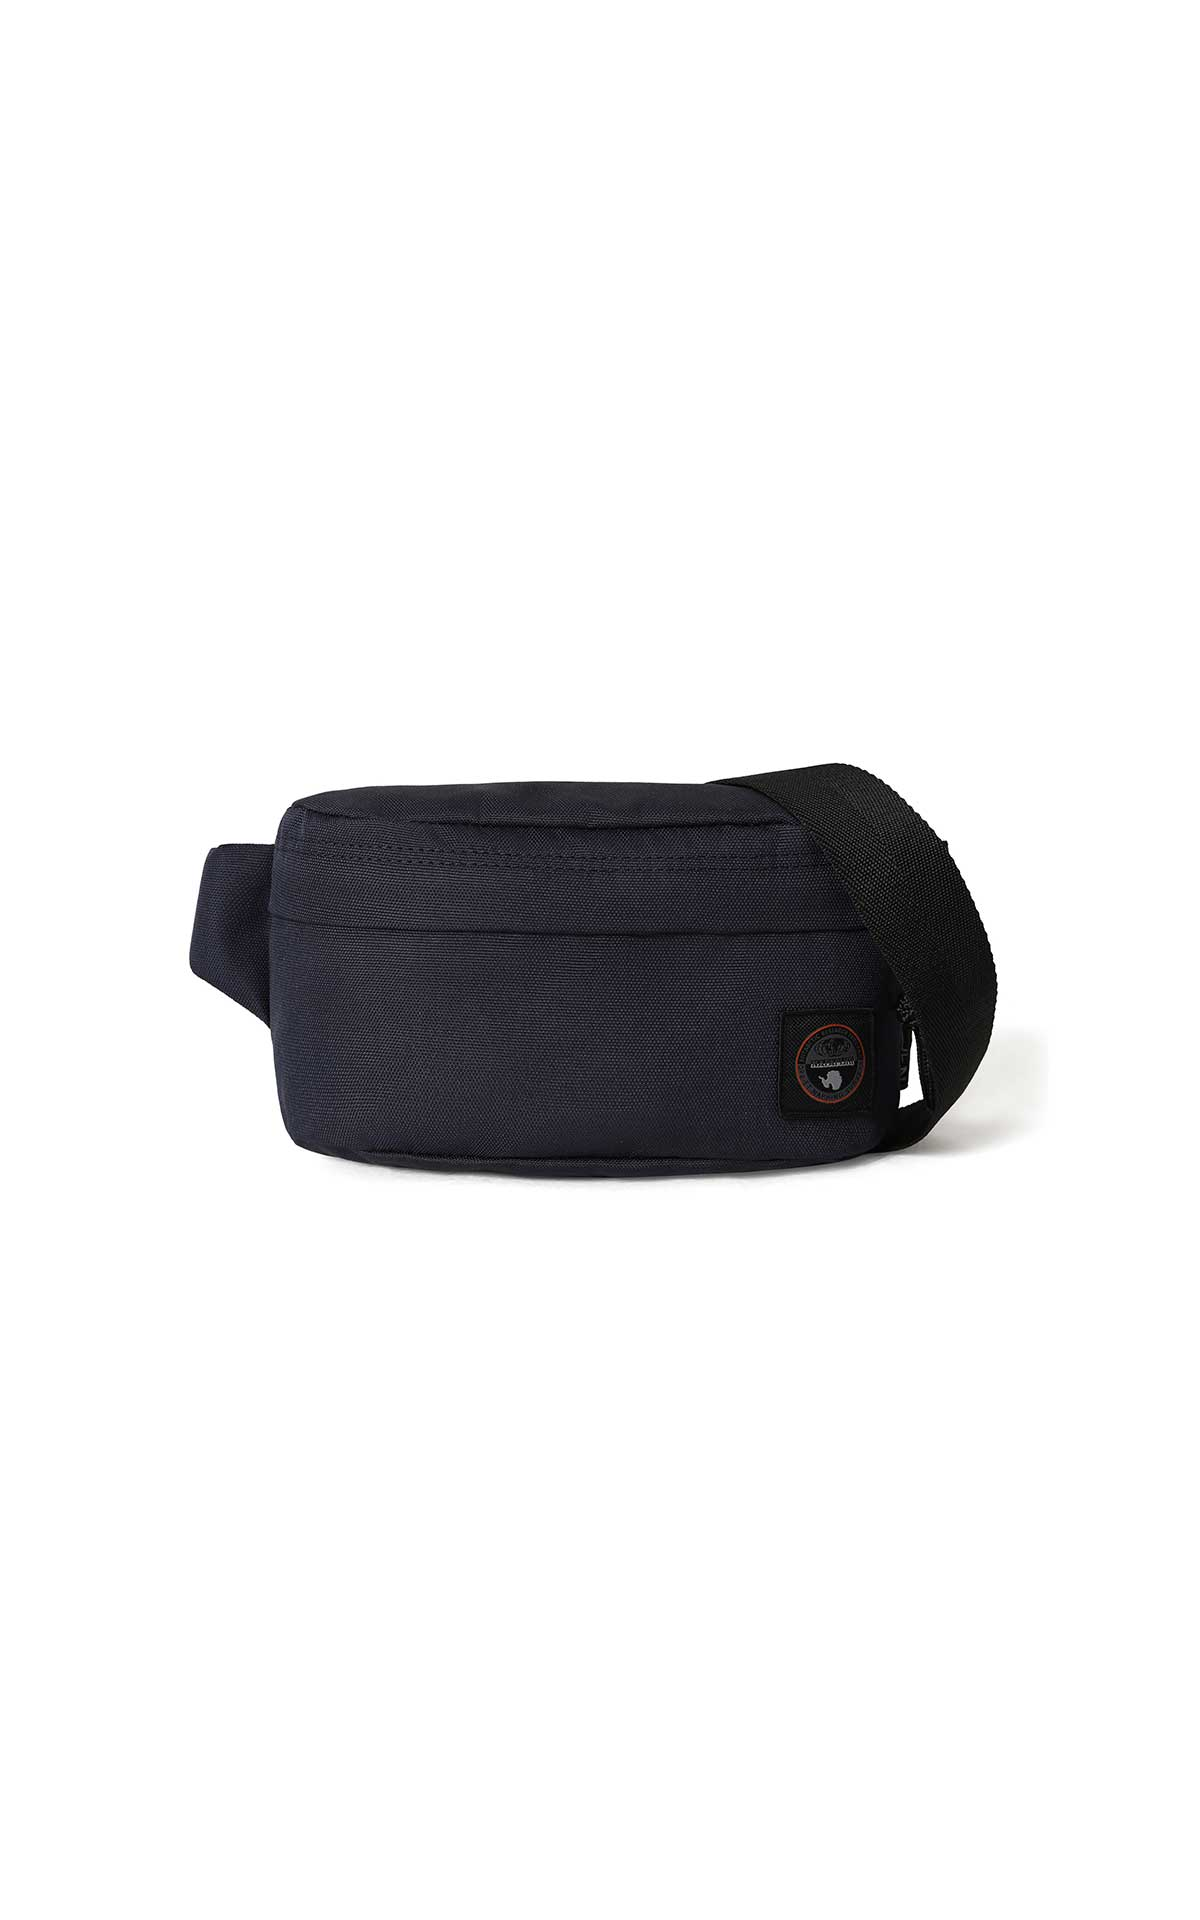 Black belt bag Napapijri